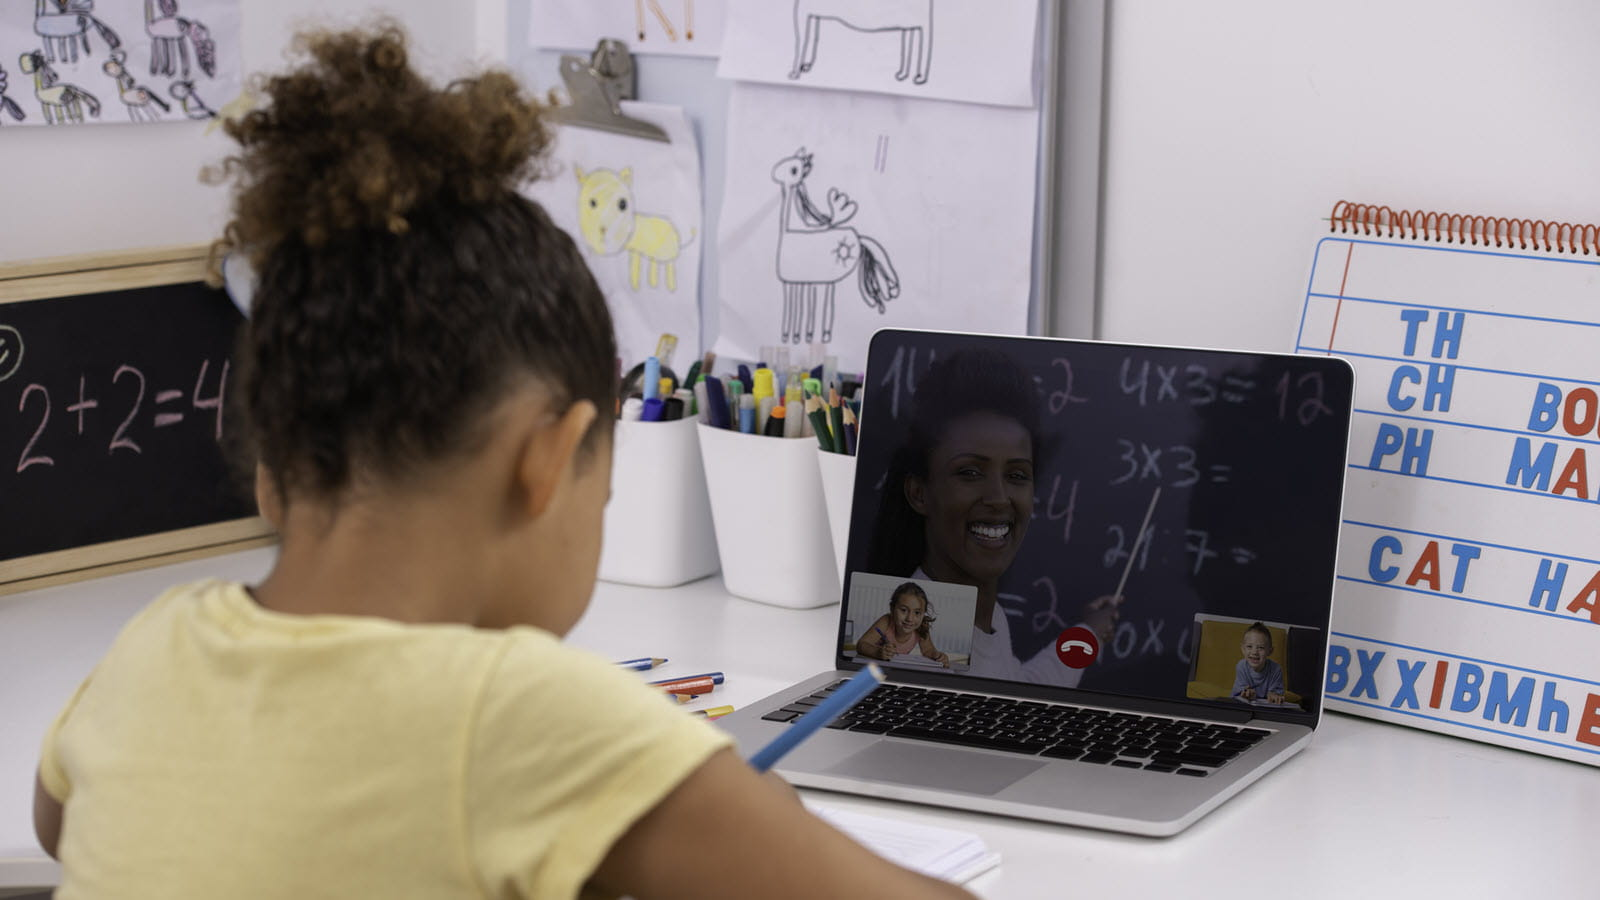 young girl at a home desk with laptop participating in virtual school